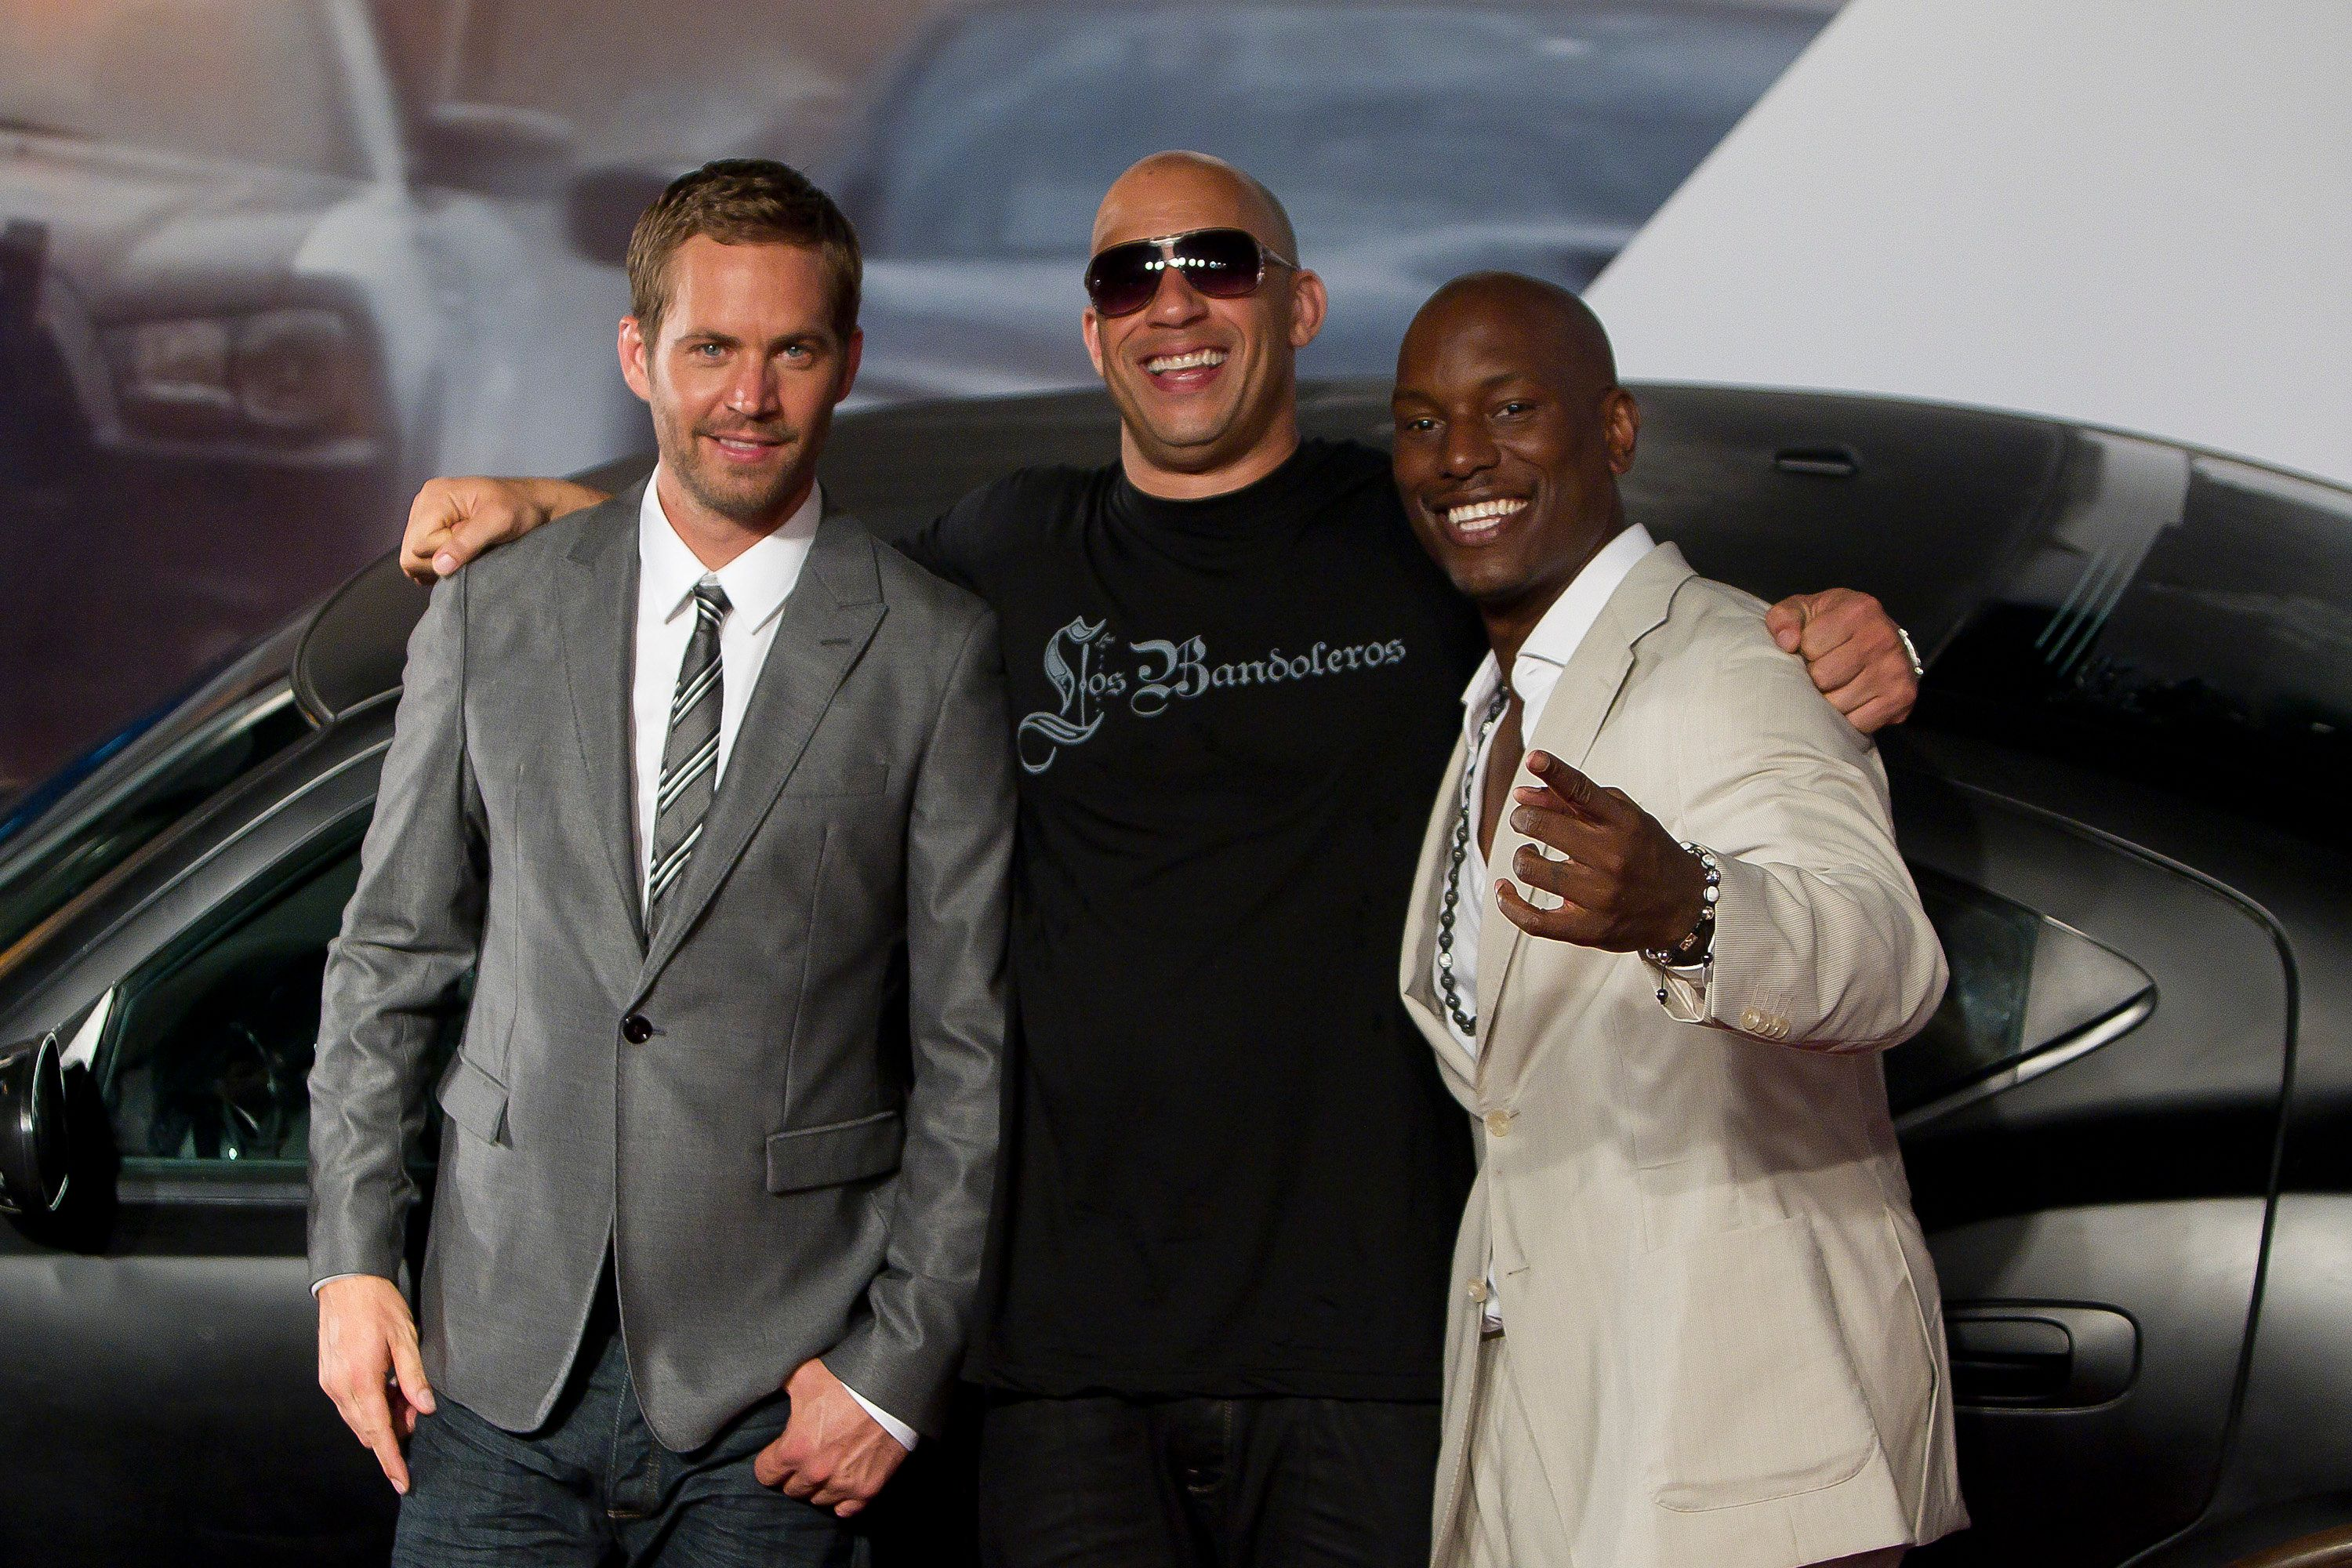 RIO DE JANEIRO, BRAZIL - APRIL 15:  (L-R) Paul Walker, Vin Diesel and Tyrese Gibson pose for photographers during the premiere of the movie 'Fast and Furious 5' at Cinepolis Lagoon on April 15, 2011 in Rio de Janeiro, Brazil. (Photo by Buda Mendes/LatinContent/Getty Images)